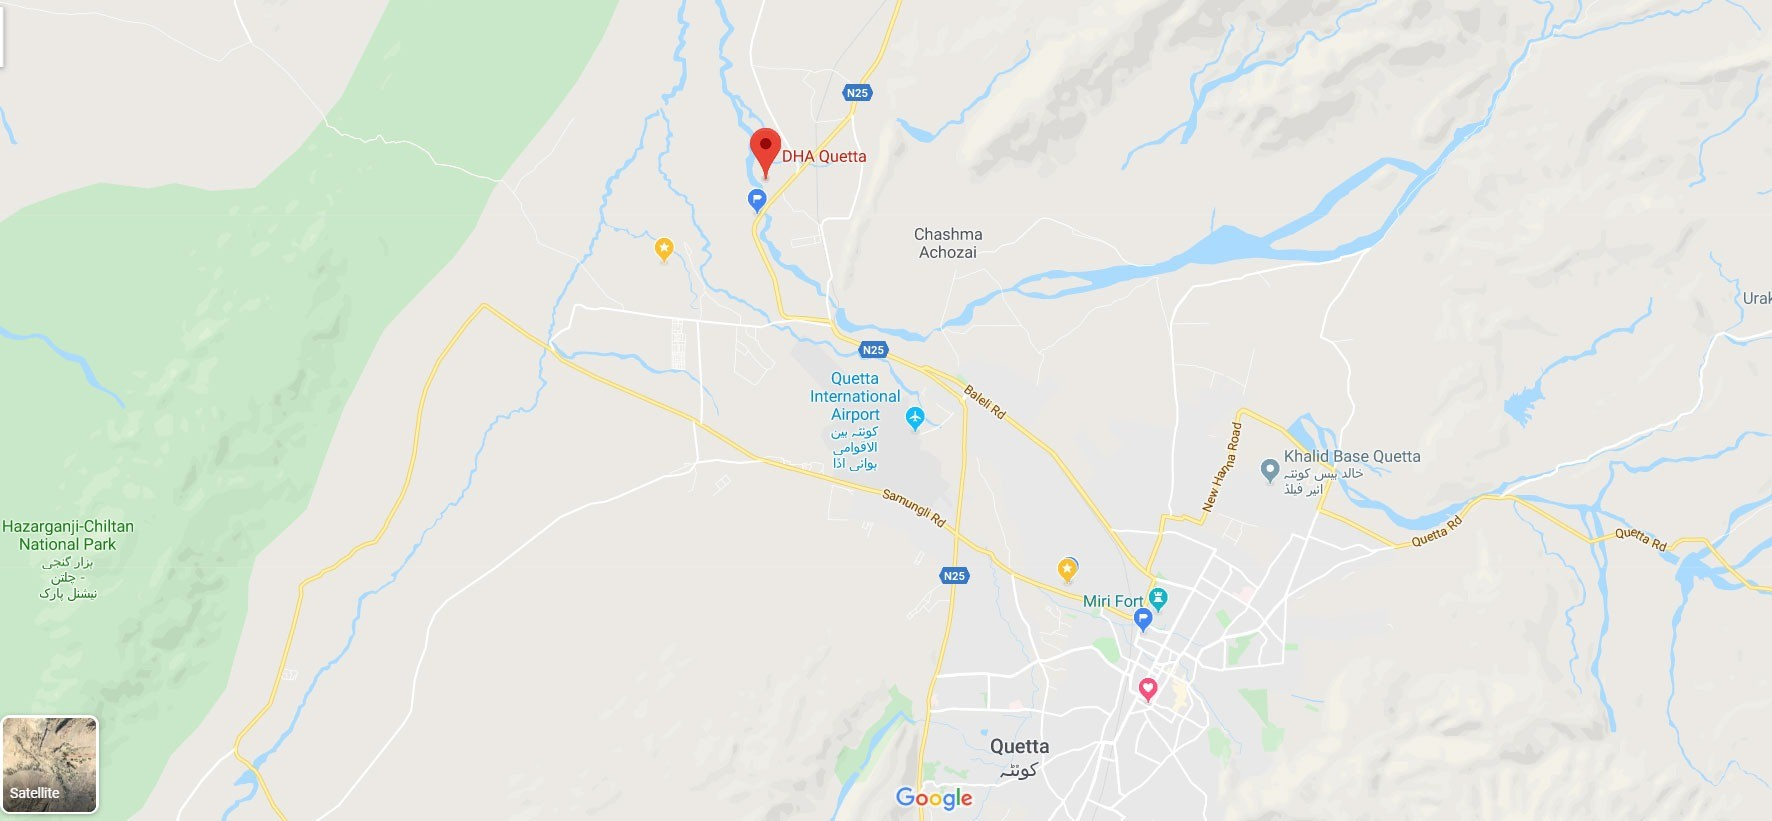 DHA Quetta Location Map